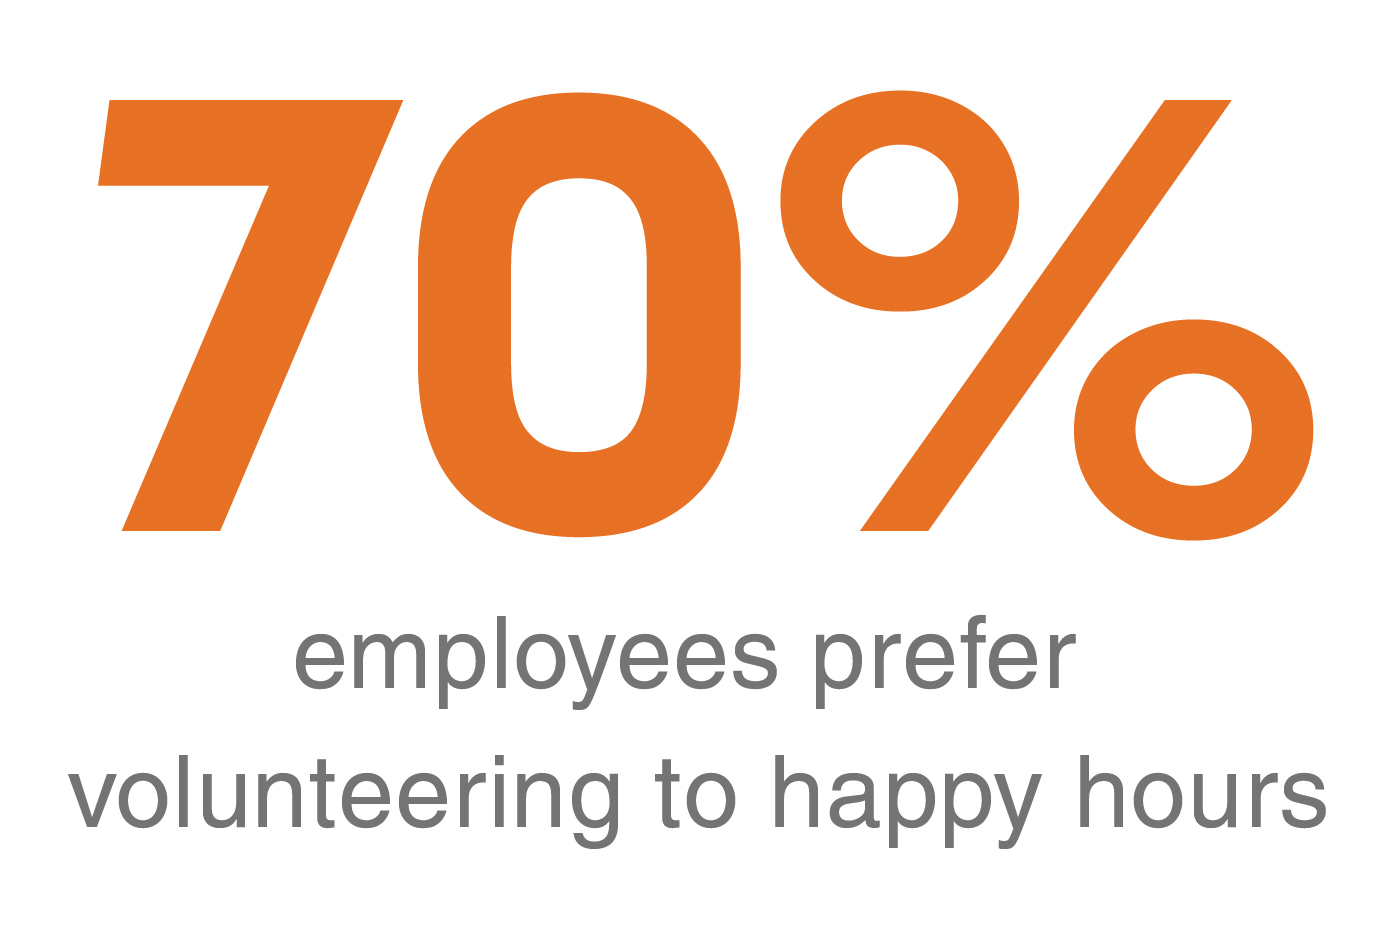 70% employees prefer volunteering to happy hours